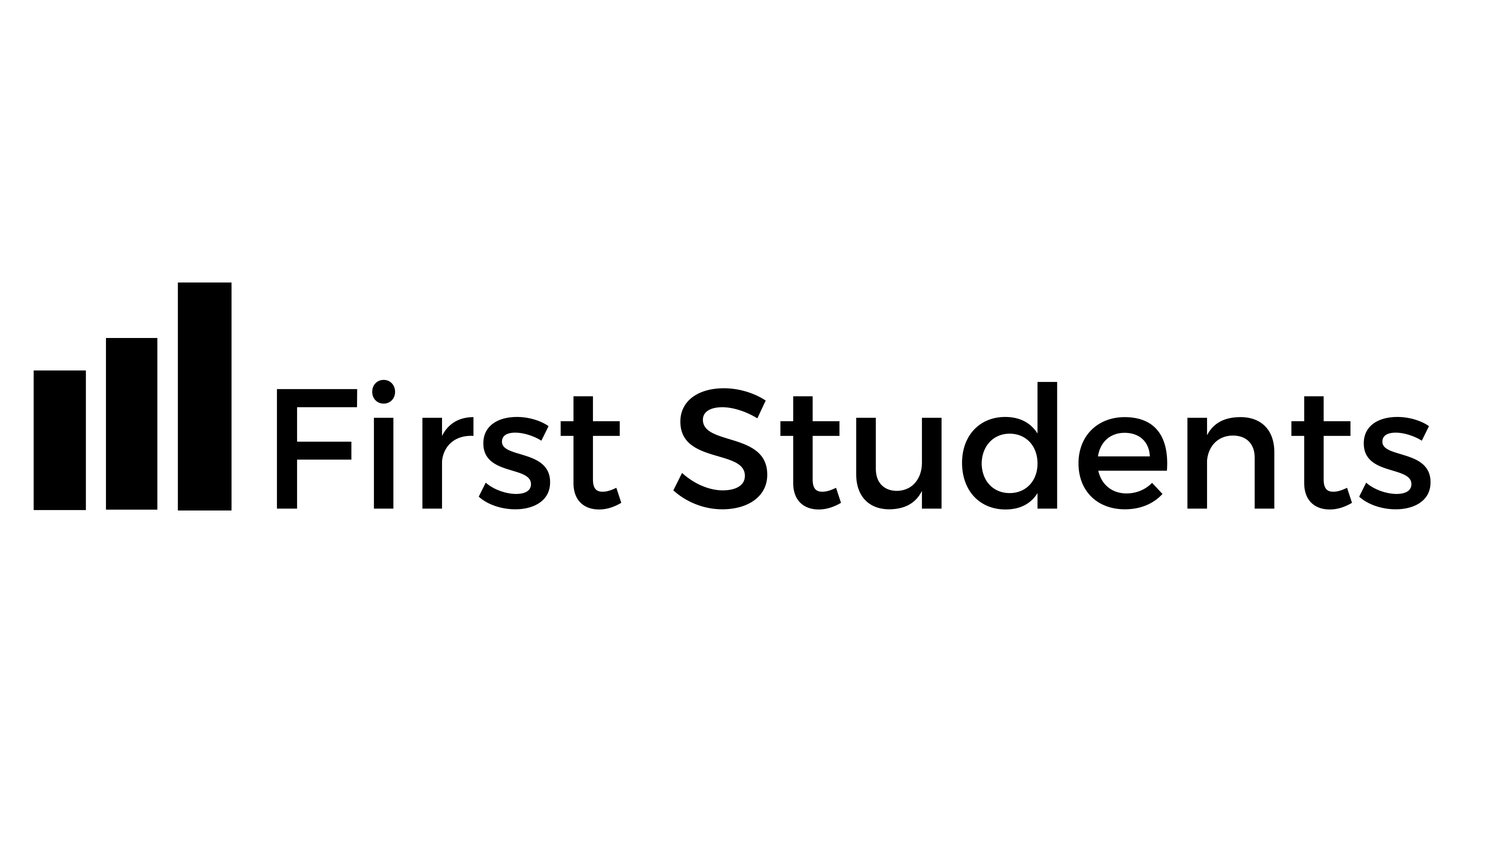 First Students